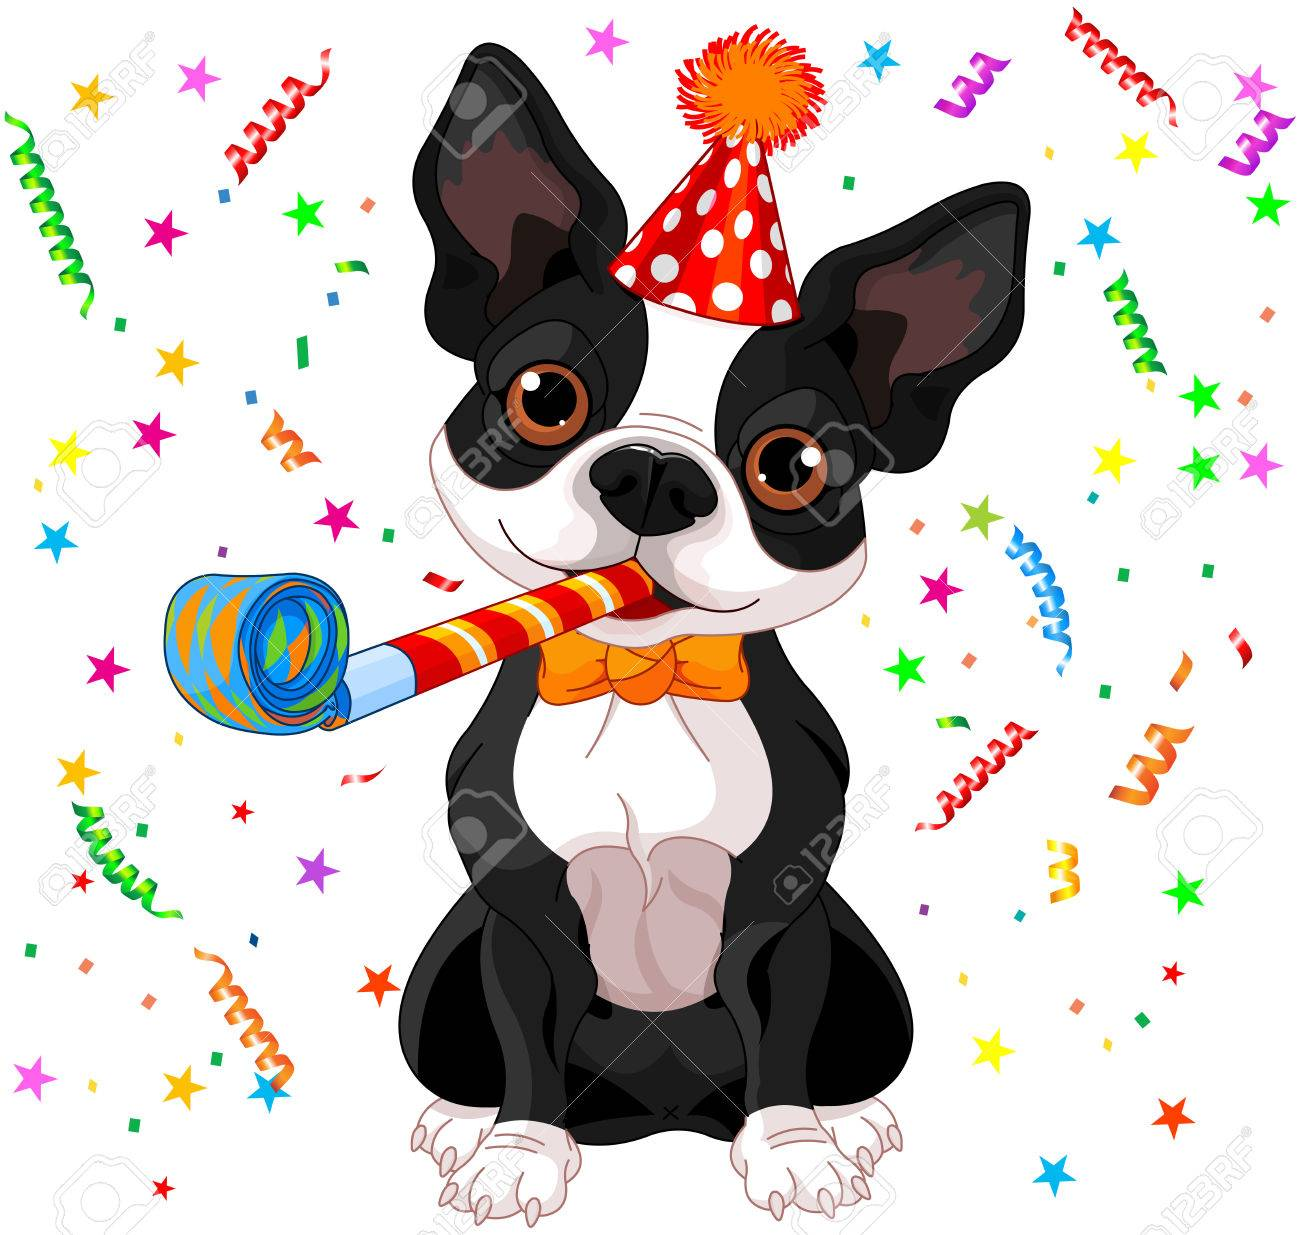 Faire la différence entre le trottoir et la route - Page 3 35588778-illustration-of-cute-boston-terrier-celebrating